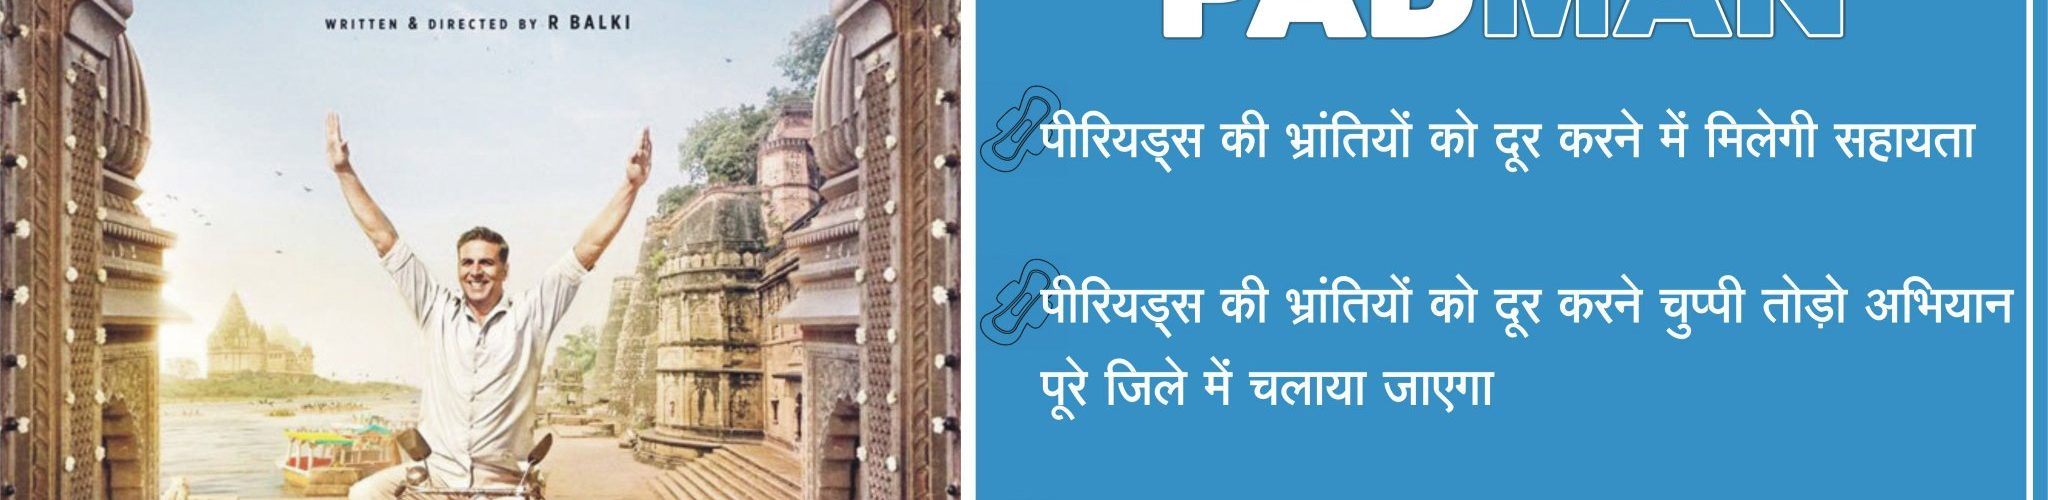 Padman to be shown at every village council of Rajnandgaon, Chattisgarh